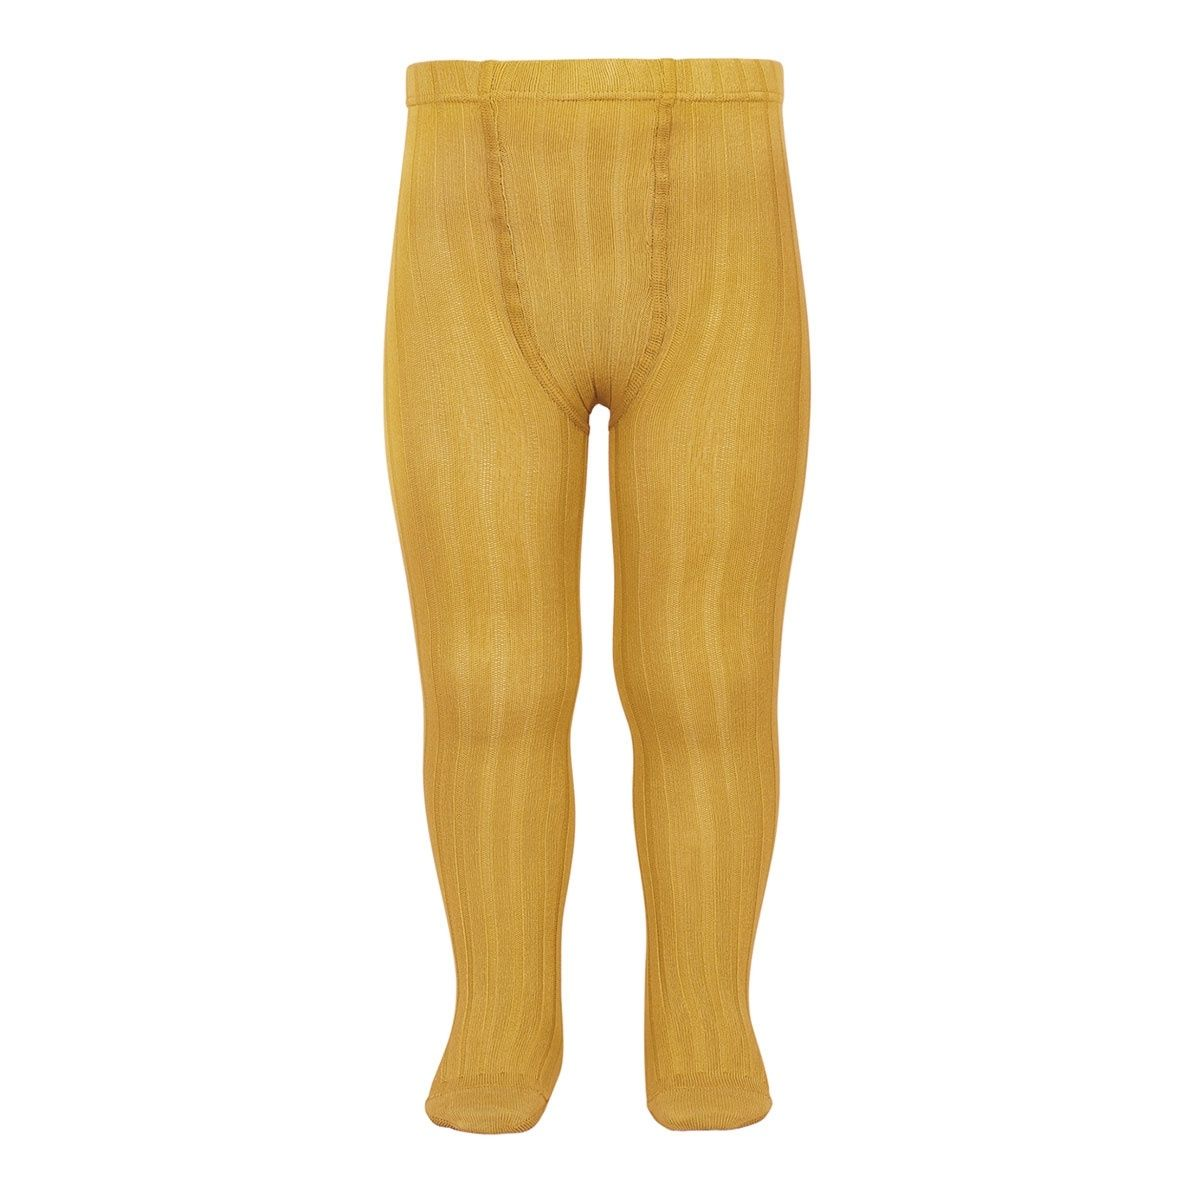 Wide Ribbed Cotton Tights mustard - Condor